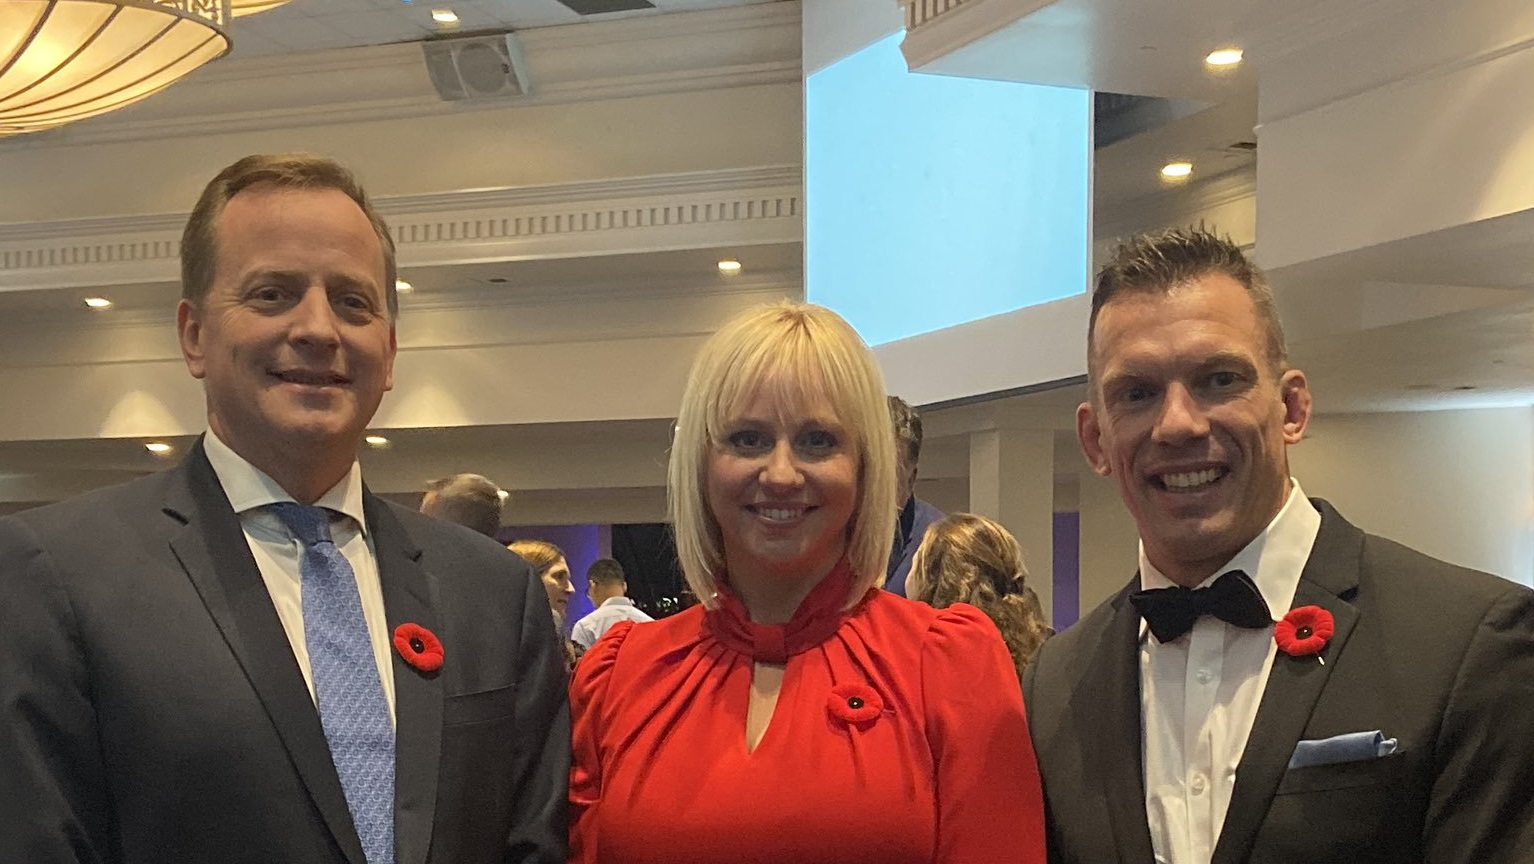 Minister of Environment Conservation and Parks Jeff Yurek with TRCA Chair Jennifer Innis and TRCA CEO John MacKenzie celebrate environmental leaders at Living City Dinner